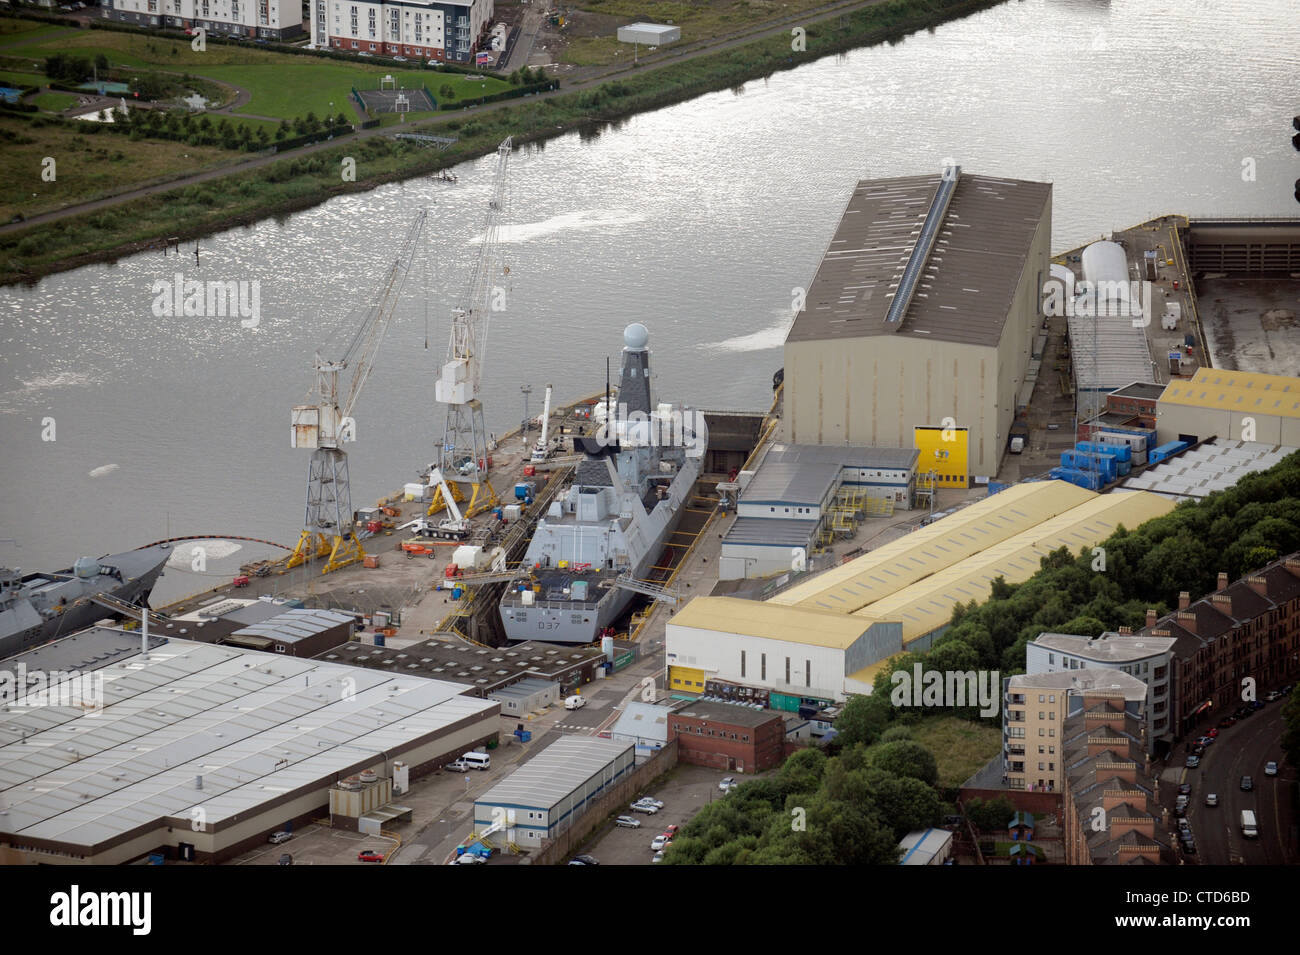 BAE Systems, Glasgow on the River Clyde, with warship in dock. - Stock Image